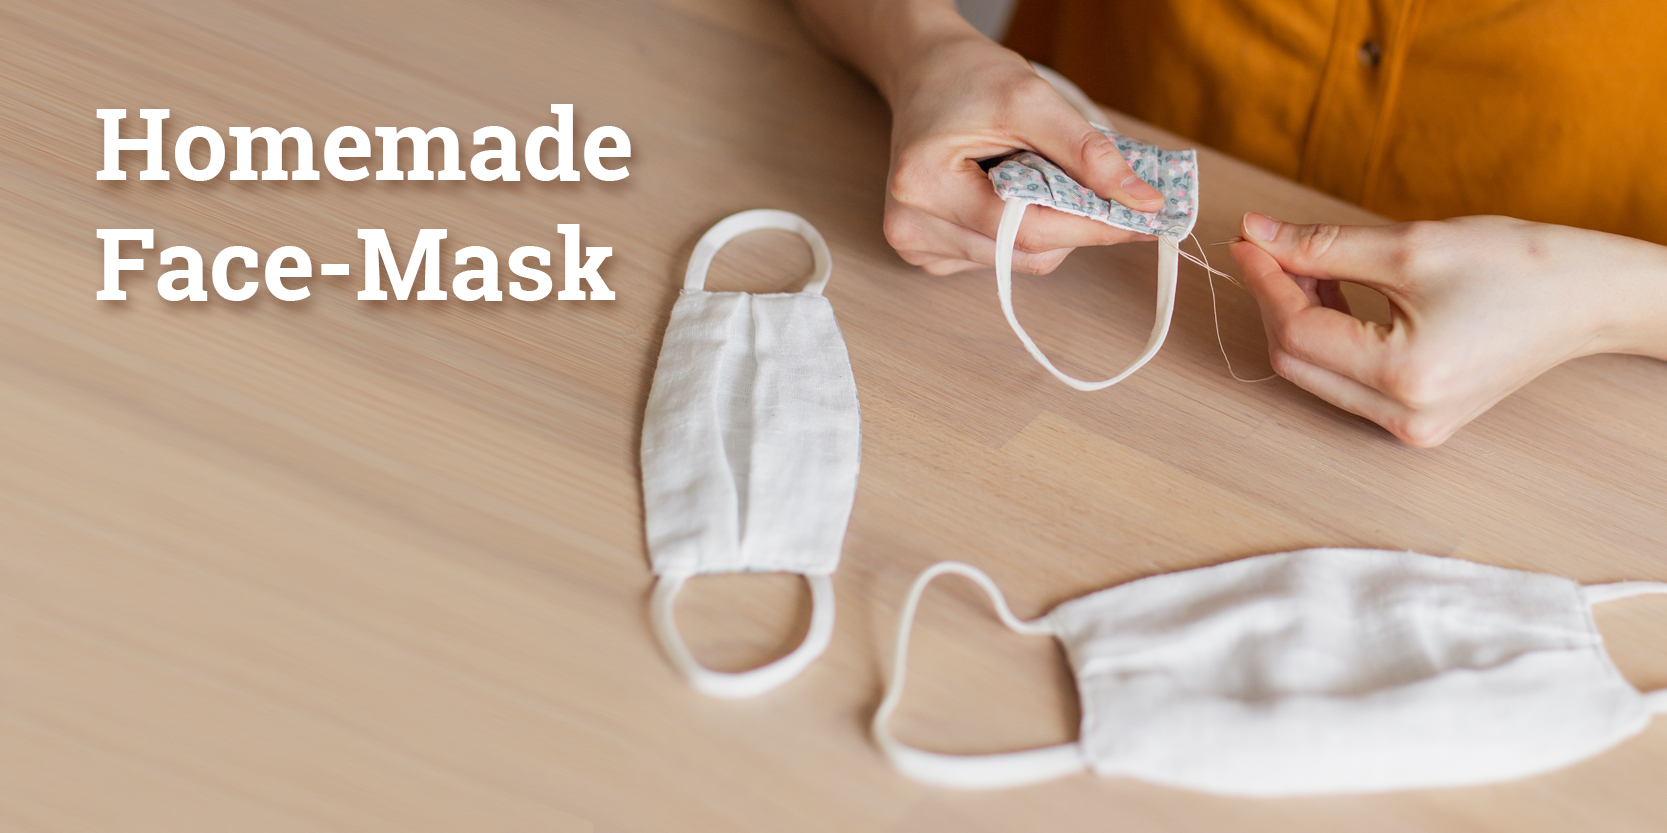 Homemade Face-Mask